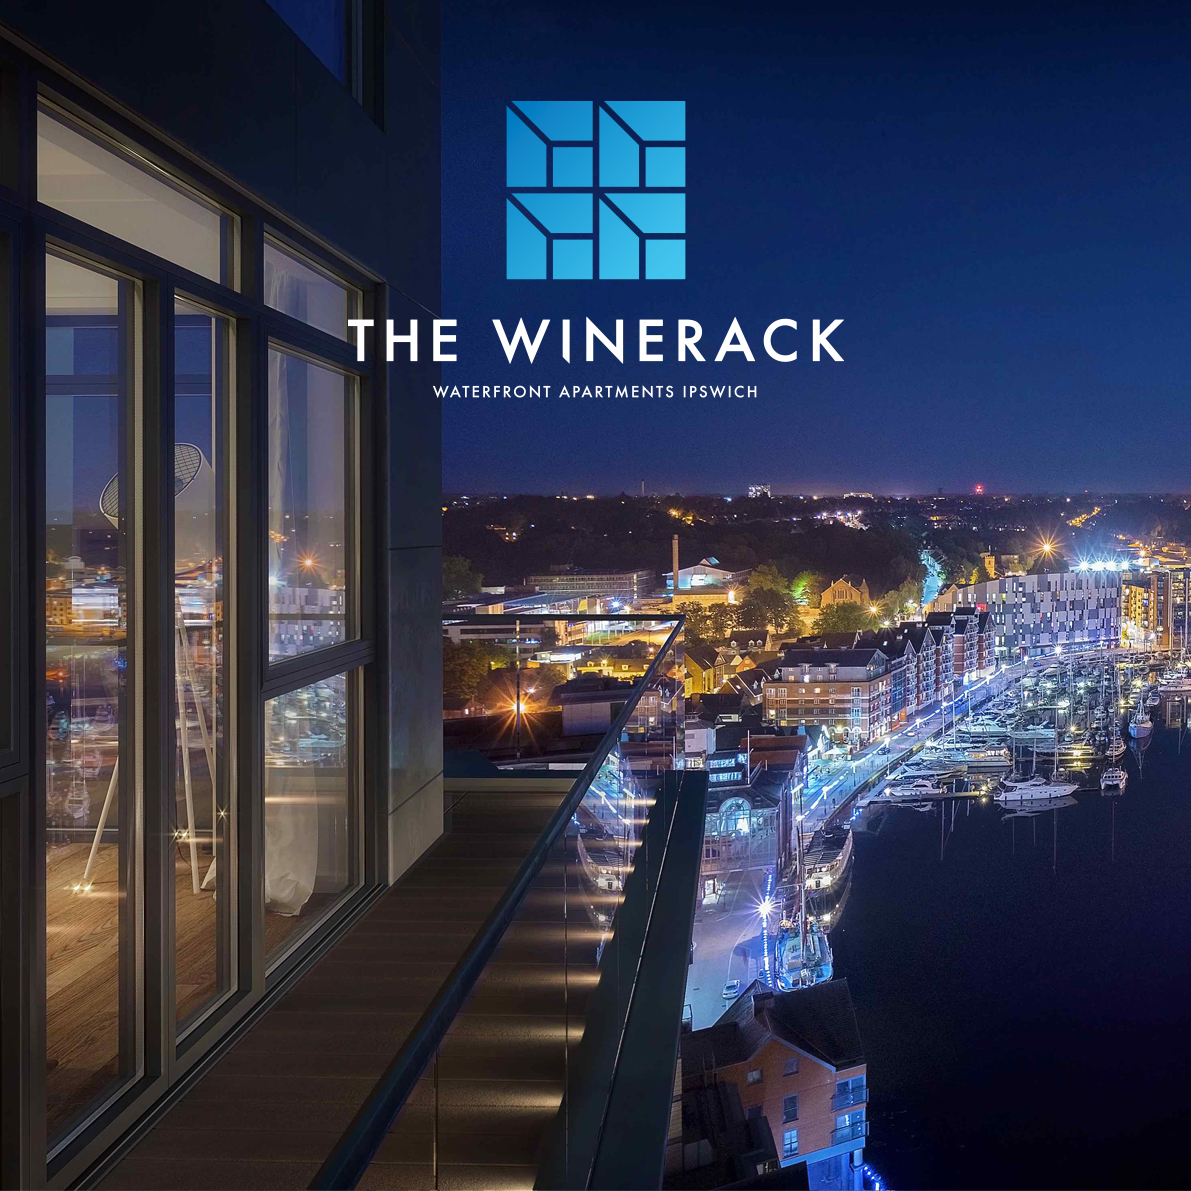 THE WINERACK